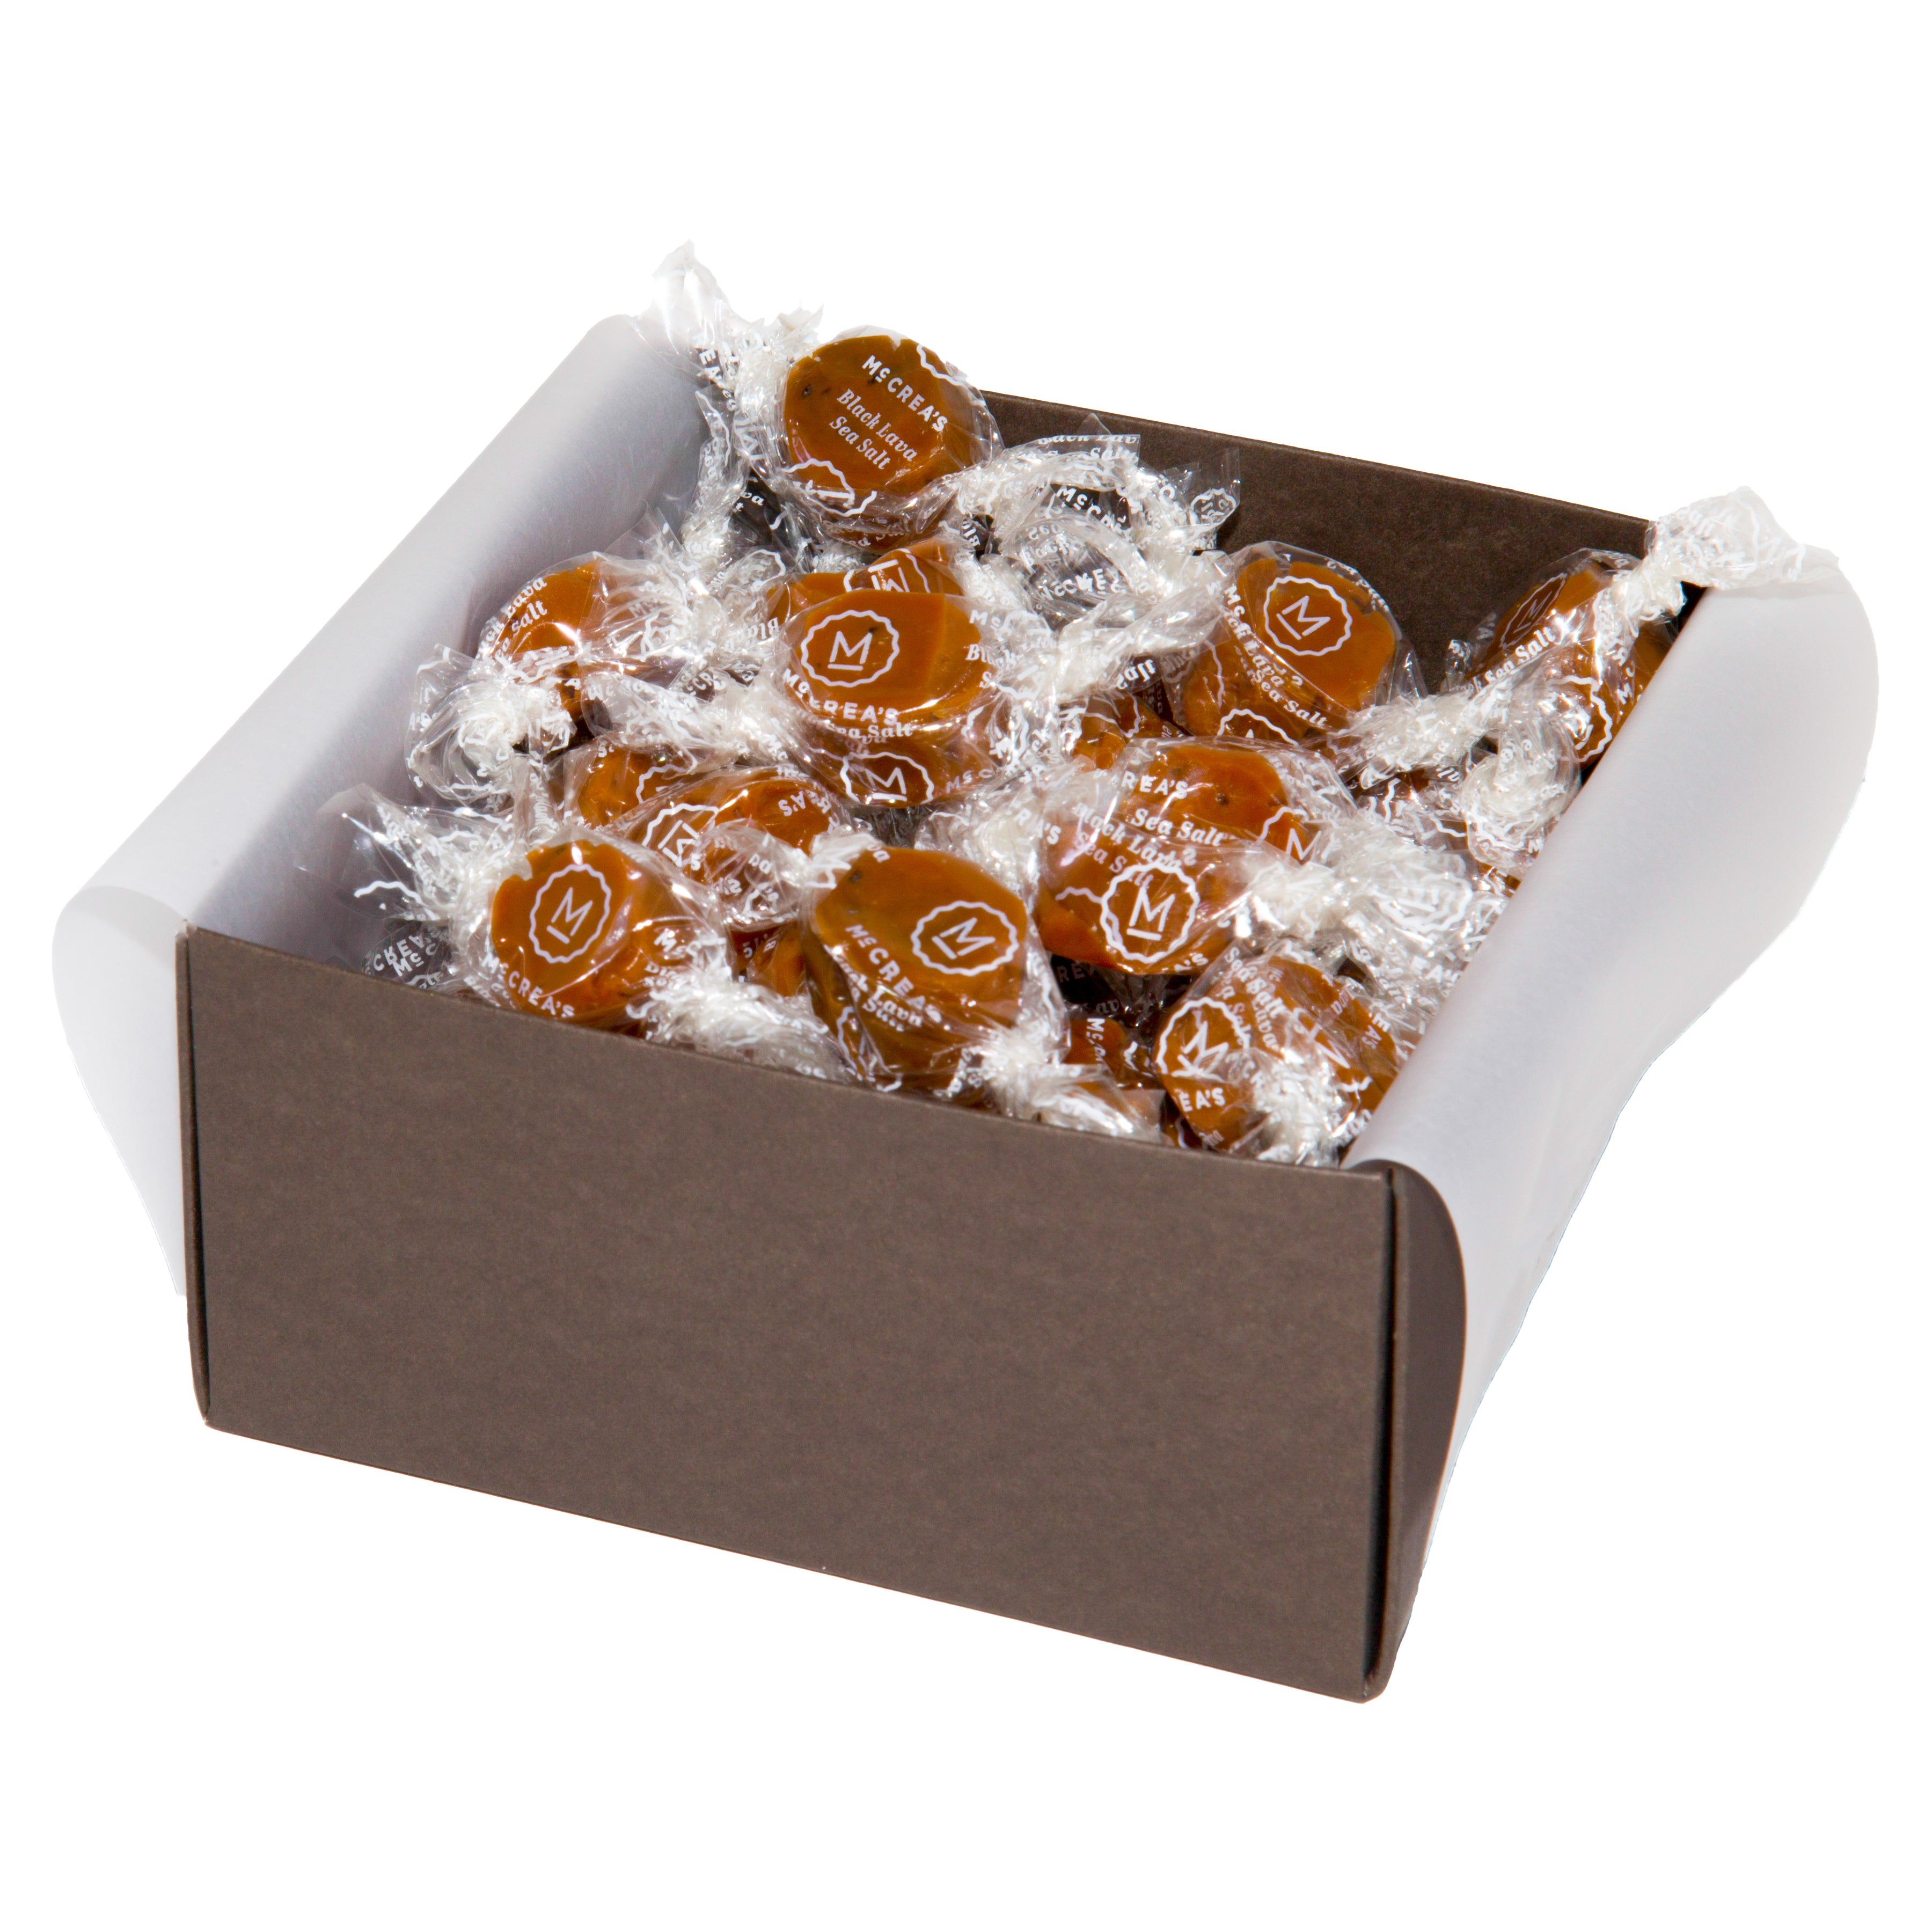 McCrea's Candies Caramel of the Month